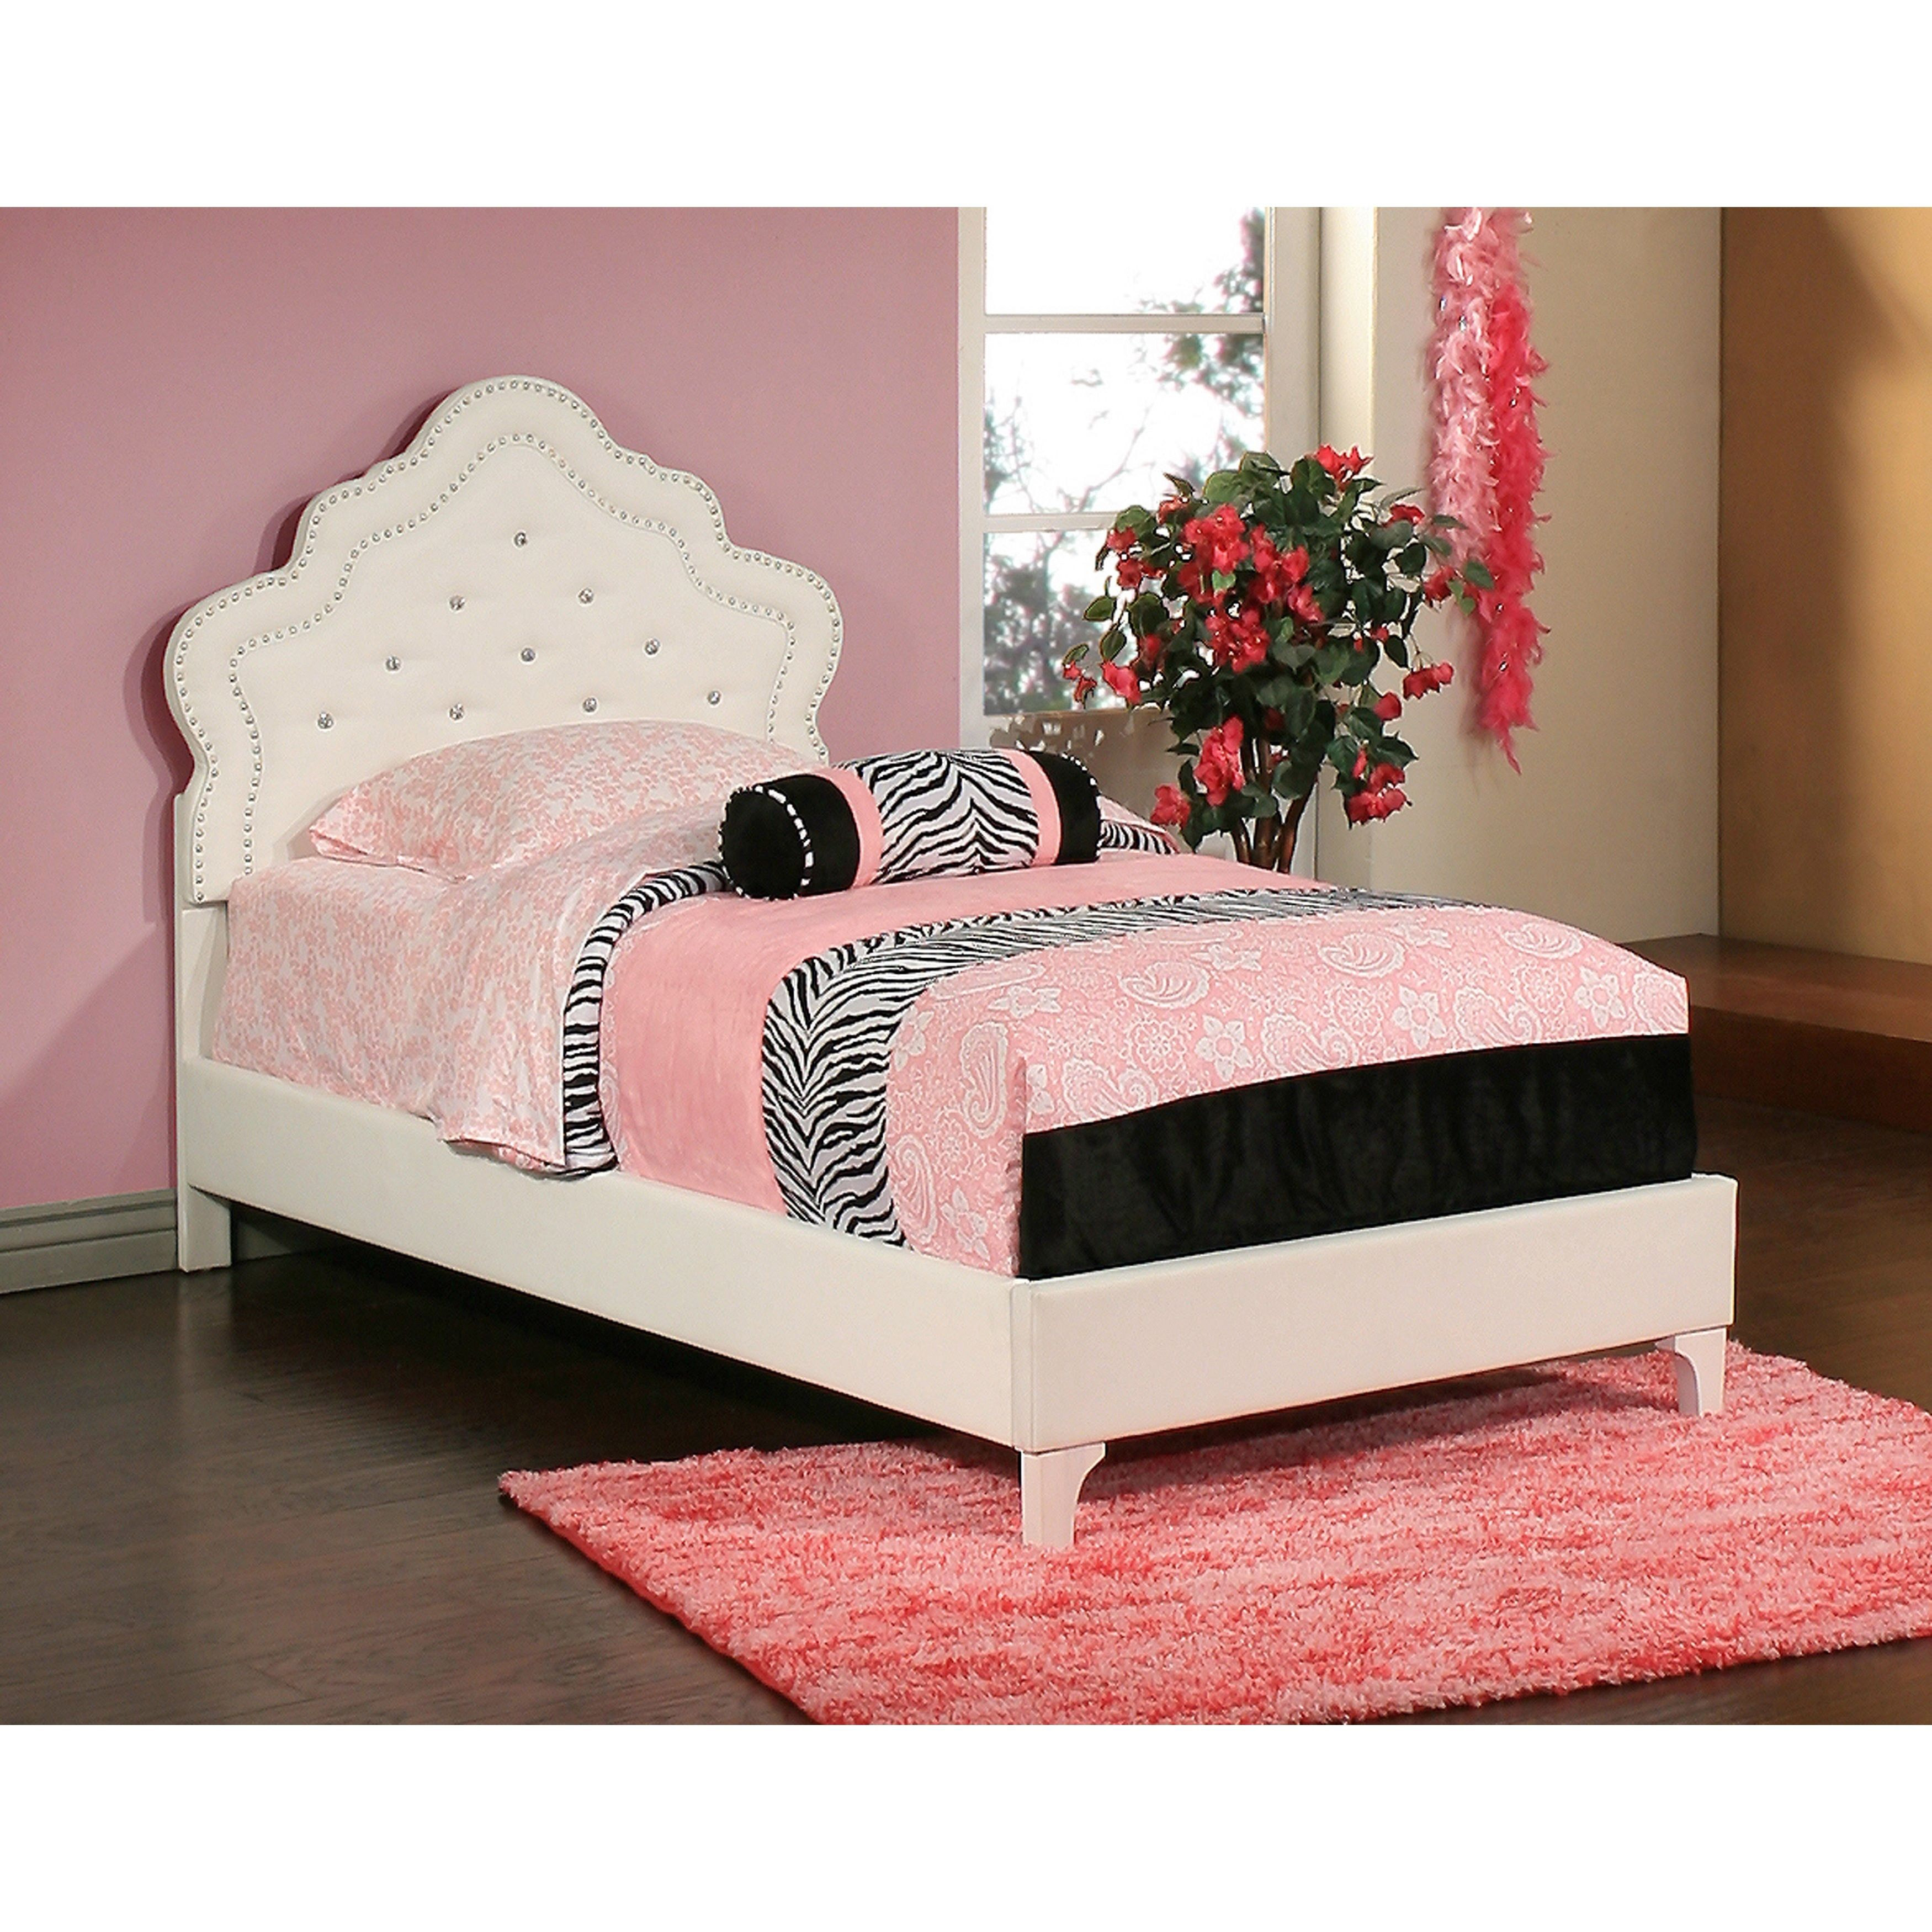 The Sabrina Bedroom Set Offers An Upholstered Princess Bed. The Upholstered  Princess Bed Features Diamond